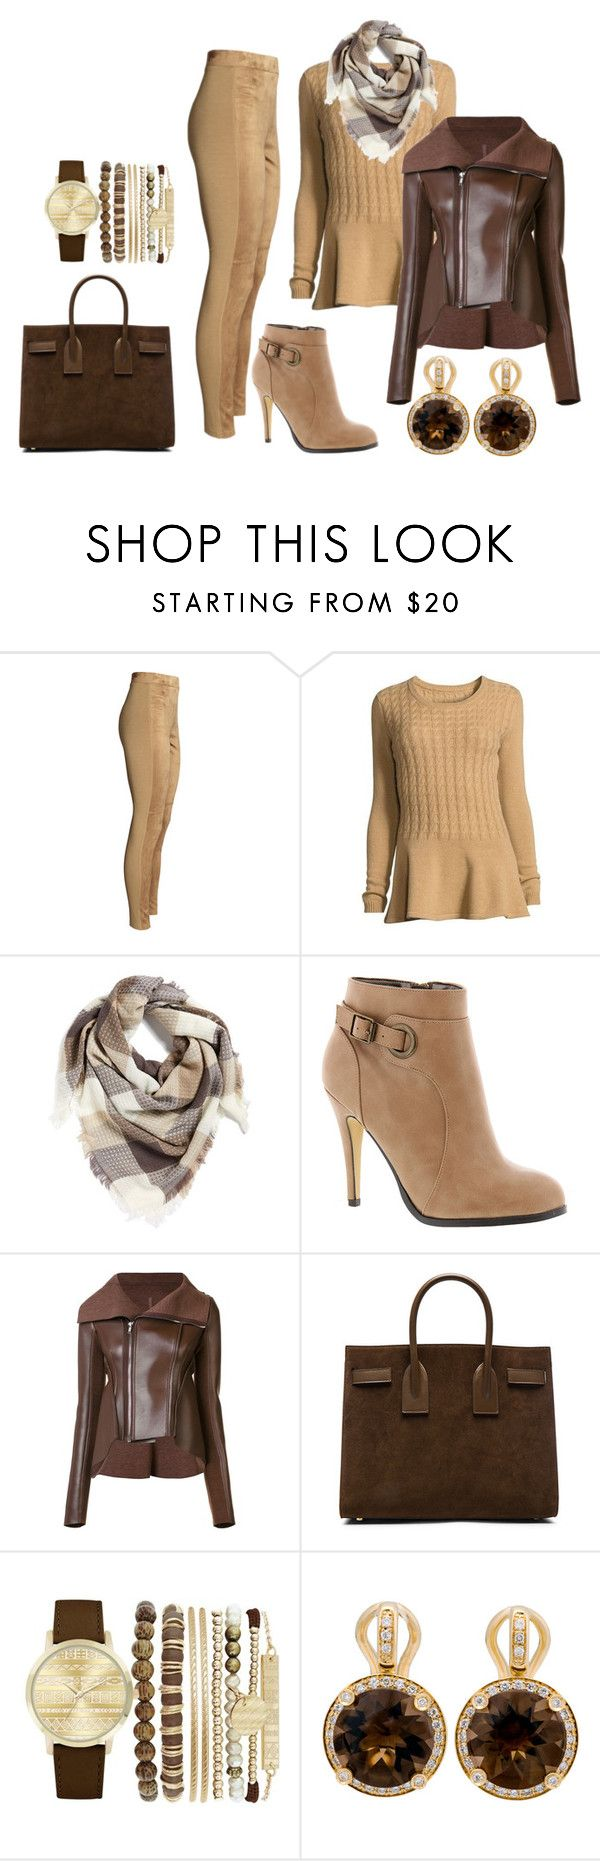 """Untitled #268"" by hsimon0526 ❤ liked on Polyvore featuring Neiman Marcus, BP., Michael Antonio, Rick Owens Lilies, Yves Saint Laurent, Jessica Carlyle and Poiray Paris"